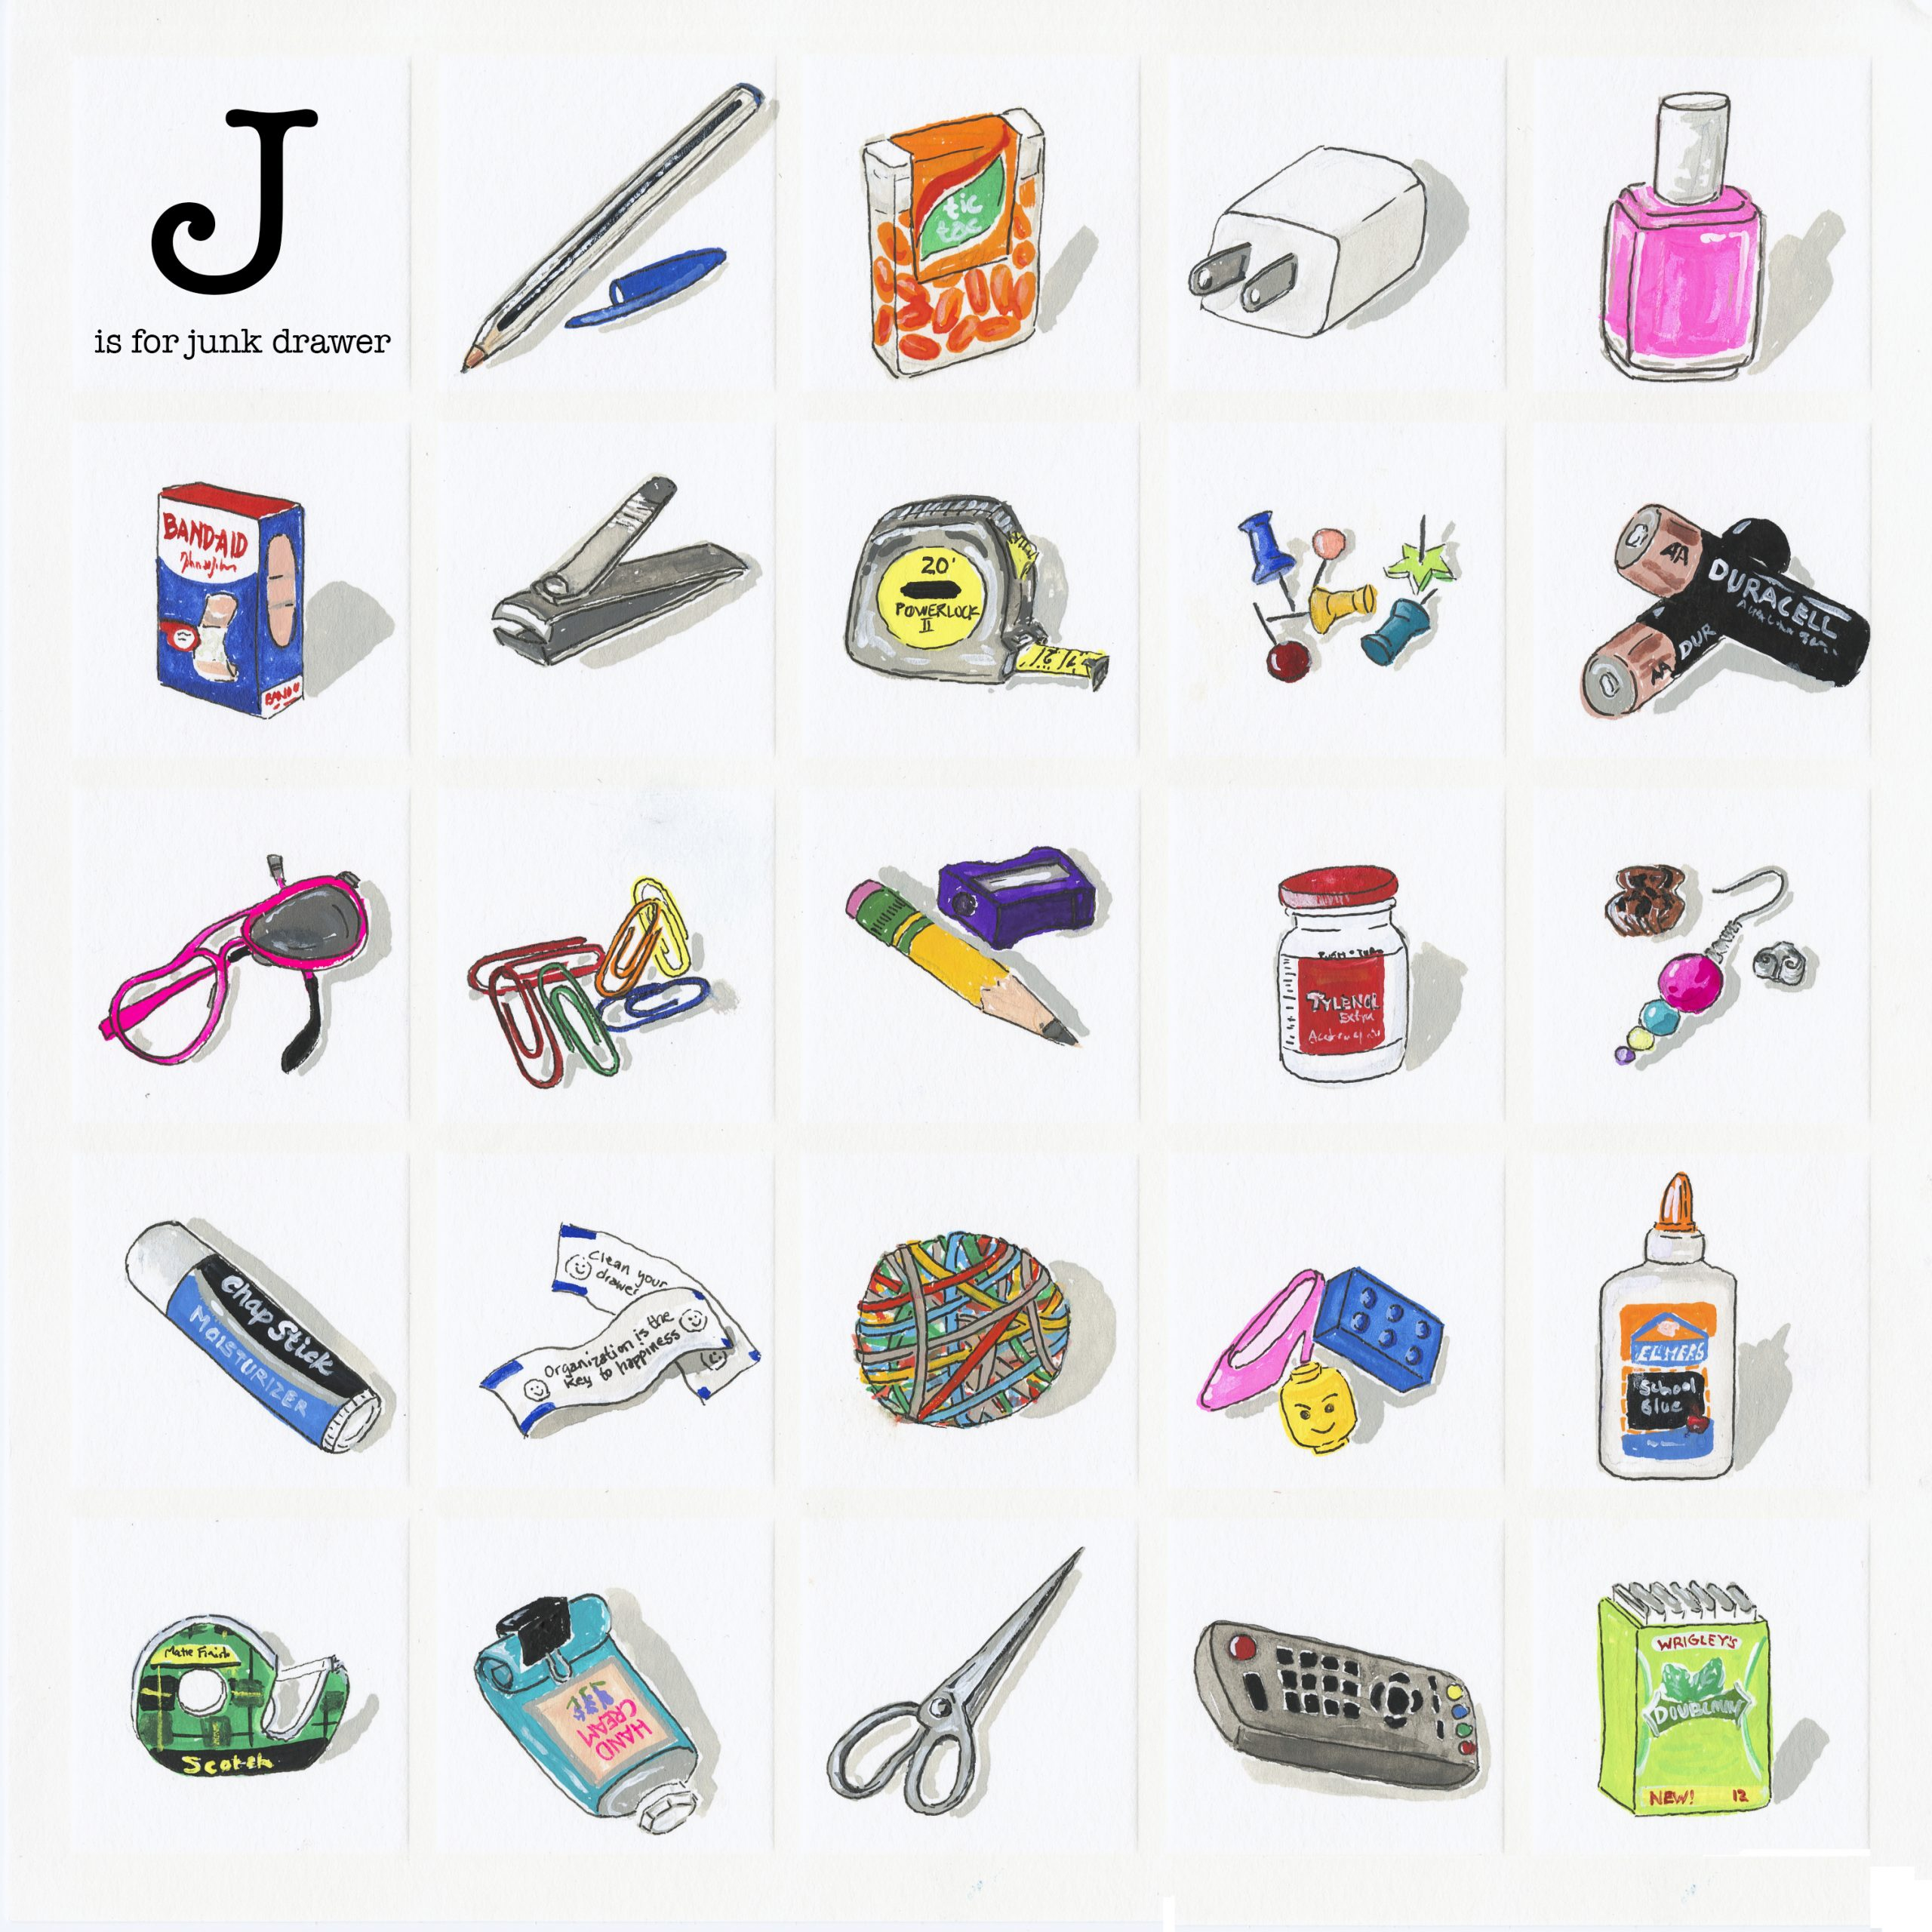 J is for Junk Drawer